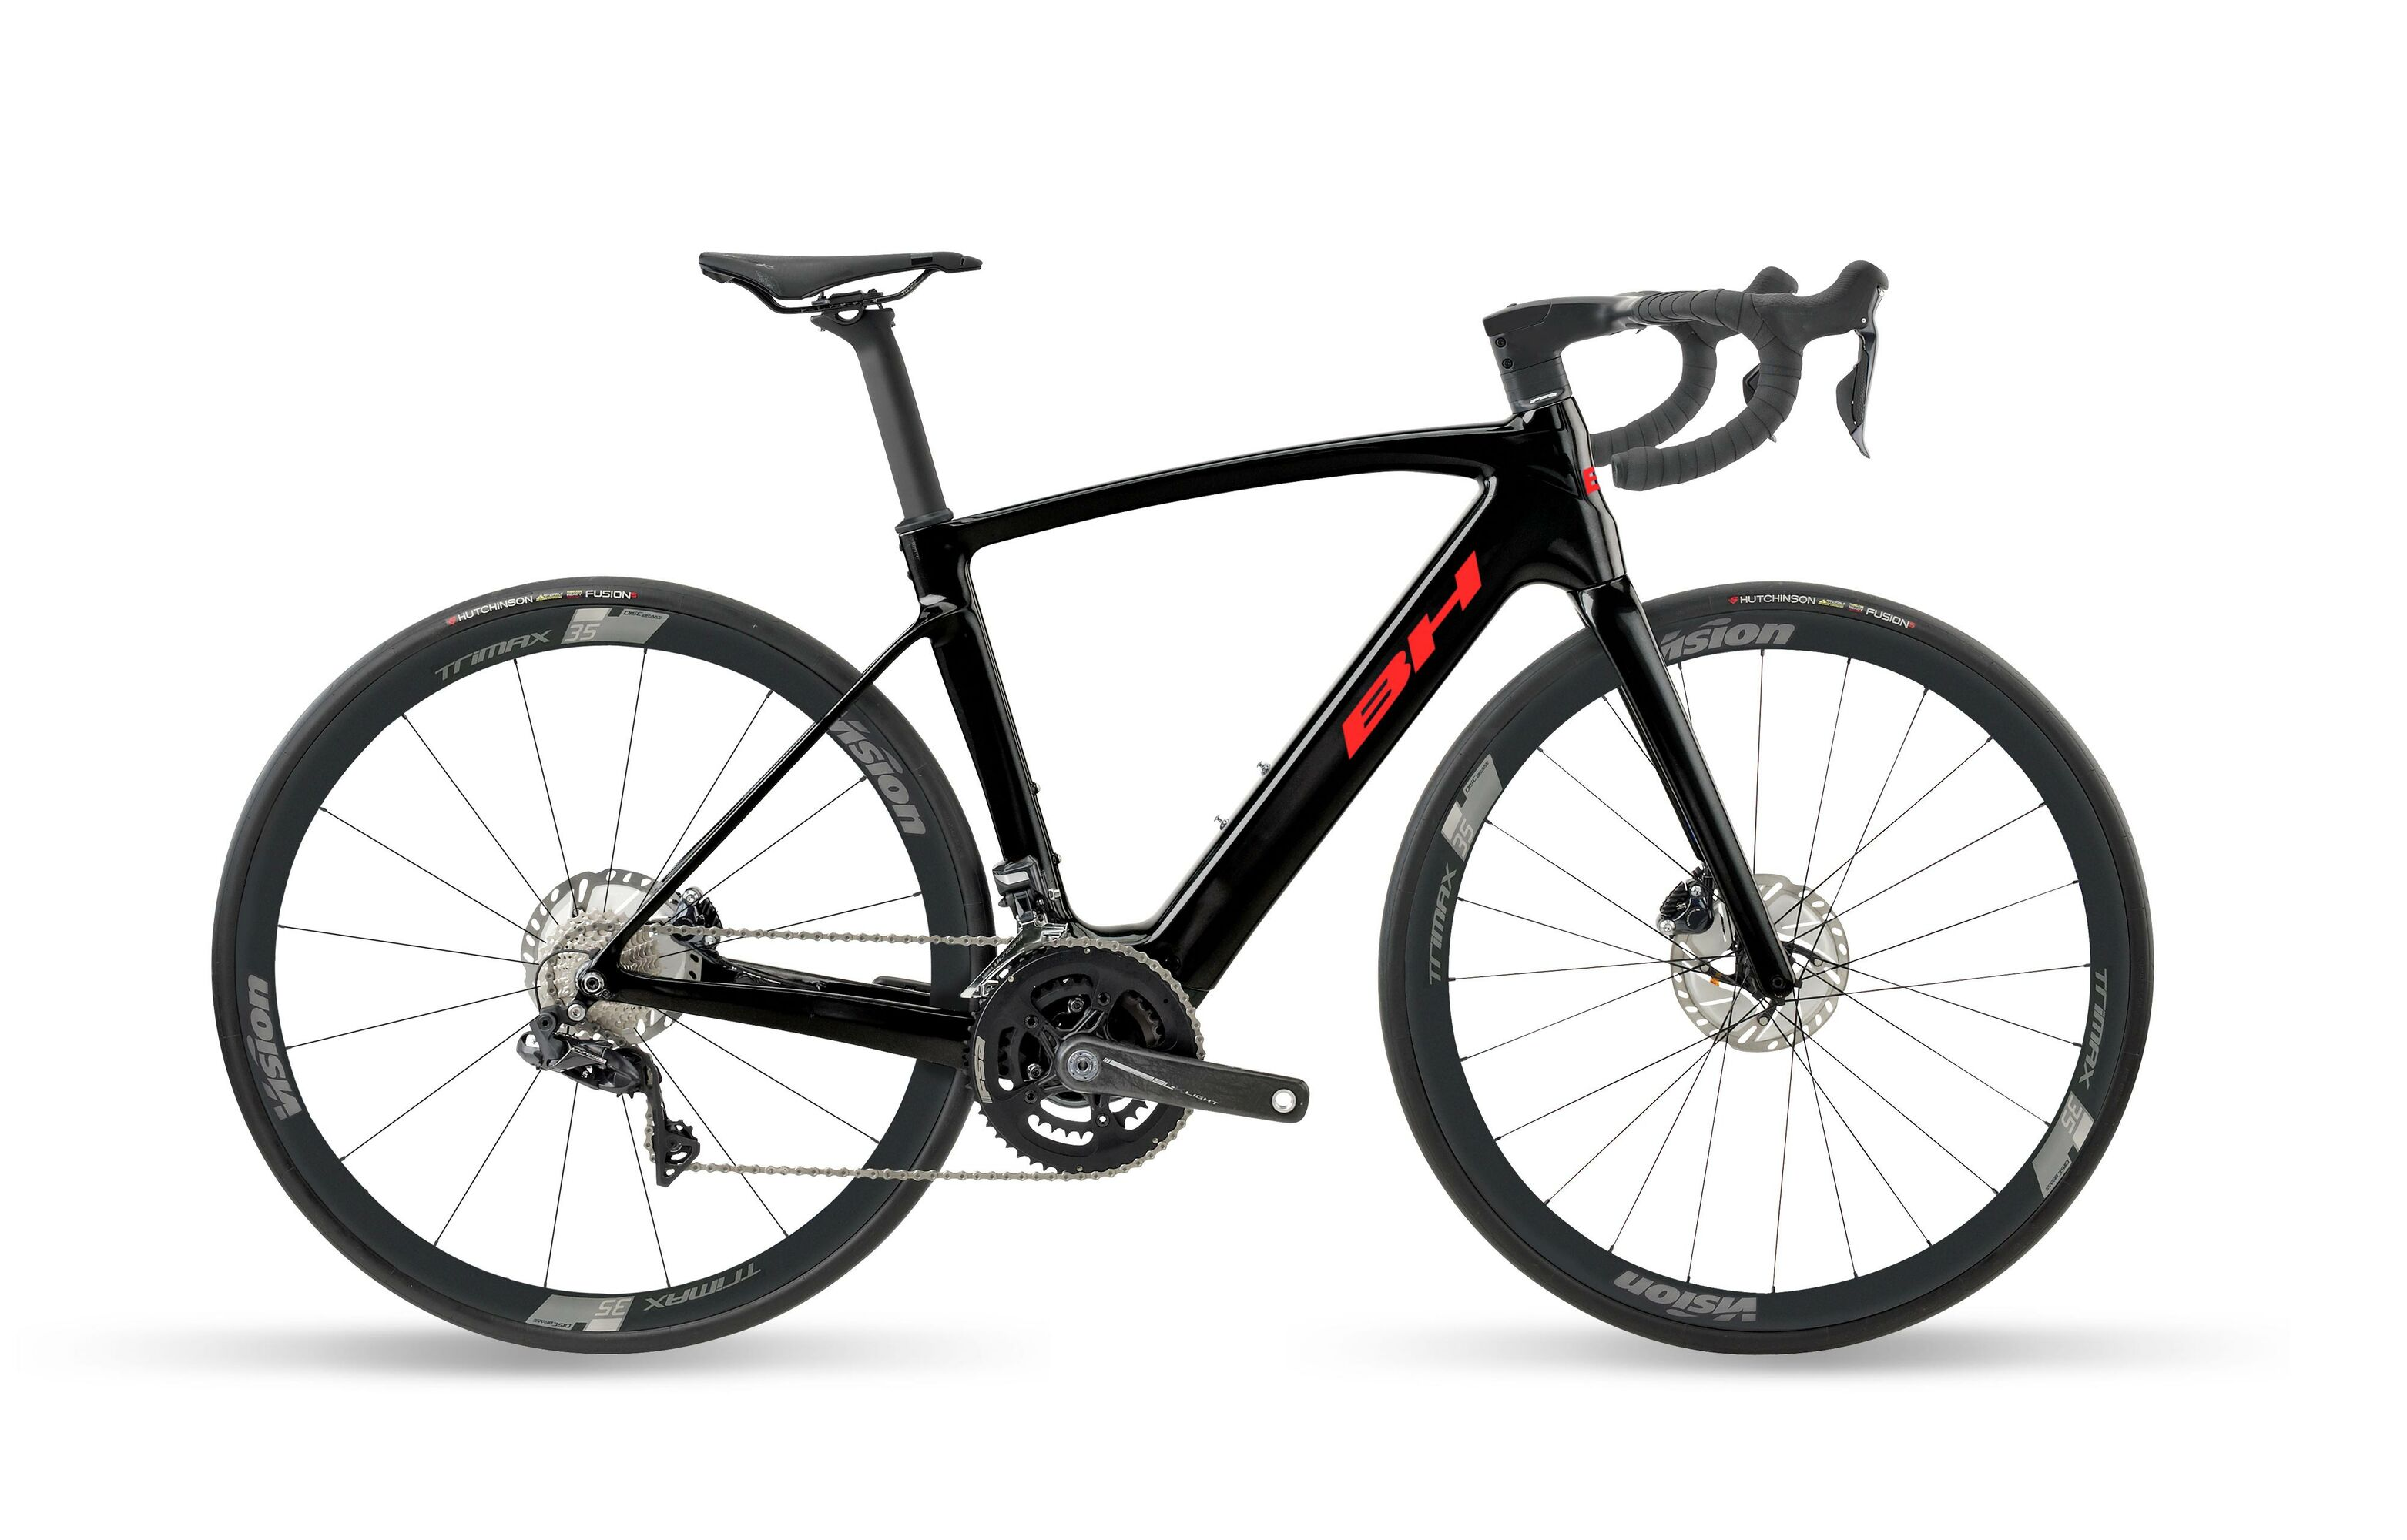 CORE RACE CARBON 1.8 - BH Bikes